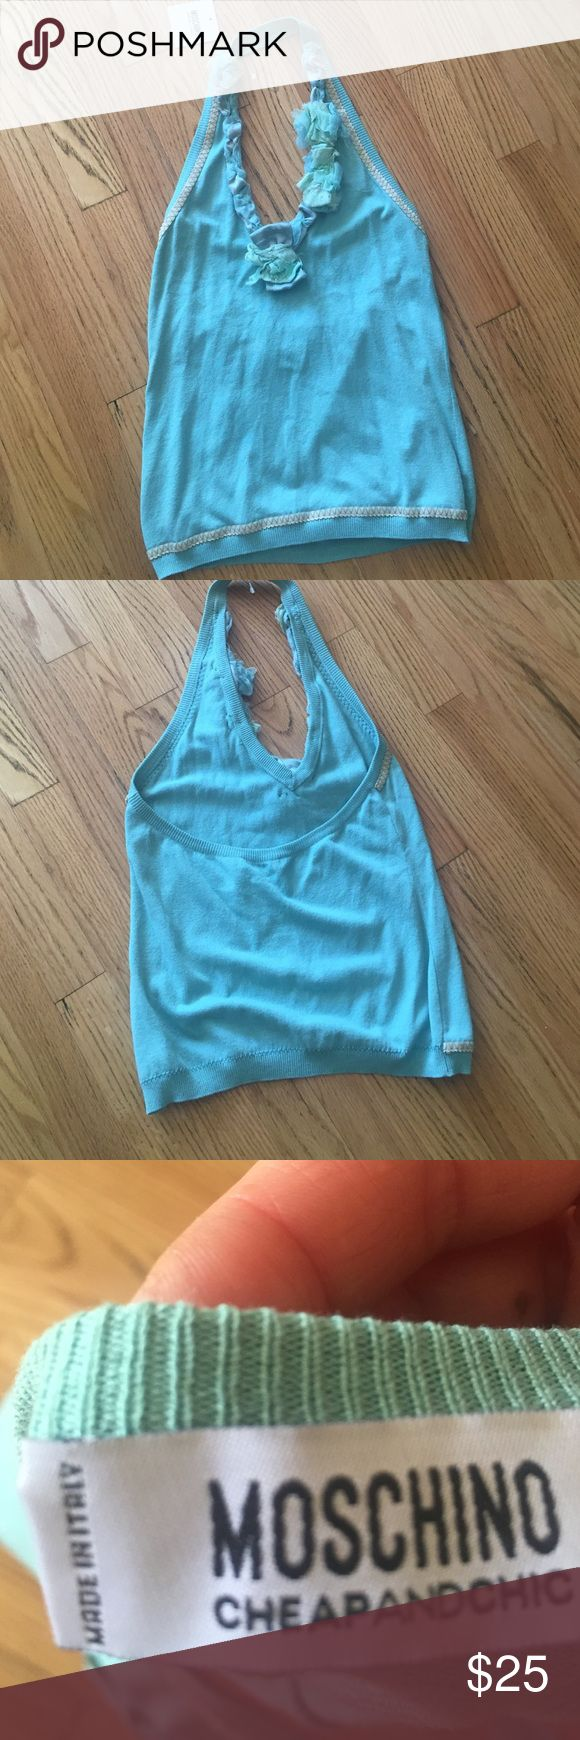 Mint green halter top Moschino size 10. Mint green halter with flowered vneck. Never worn. New with tags! It looks blue in this picture. But it's a beautiful mint green. Moschino Tops Tank Tops